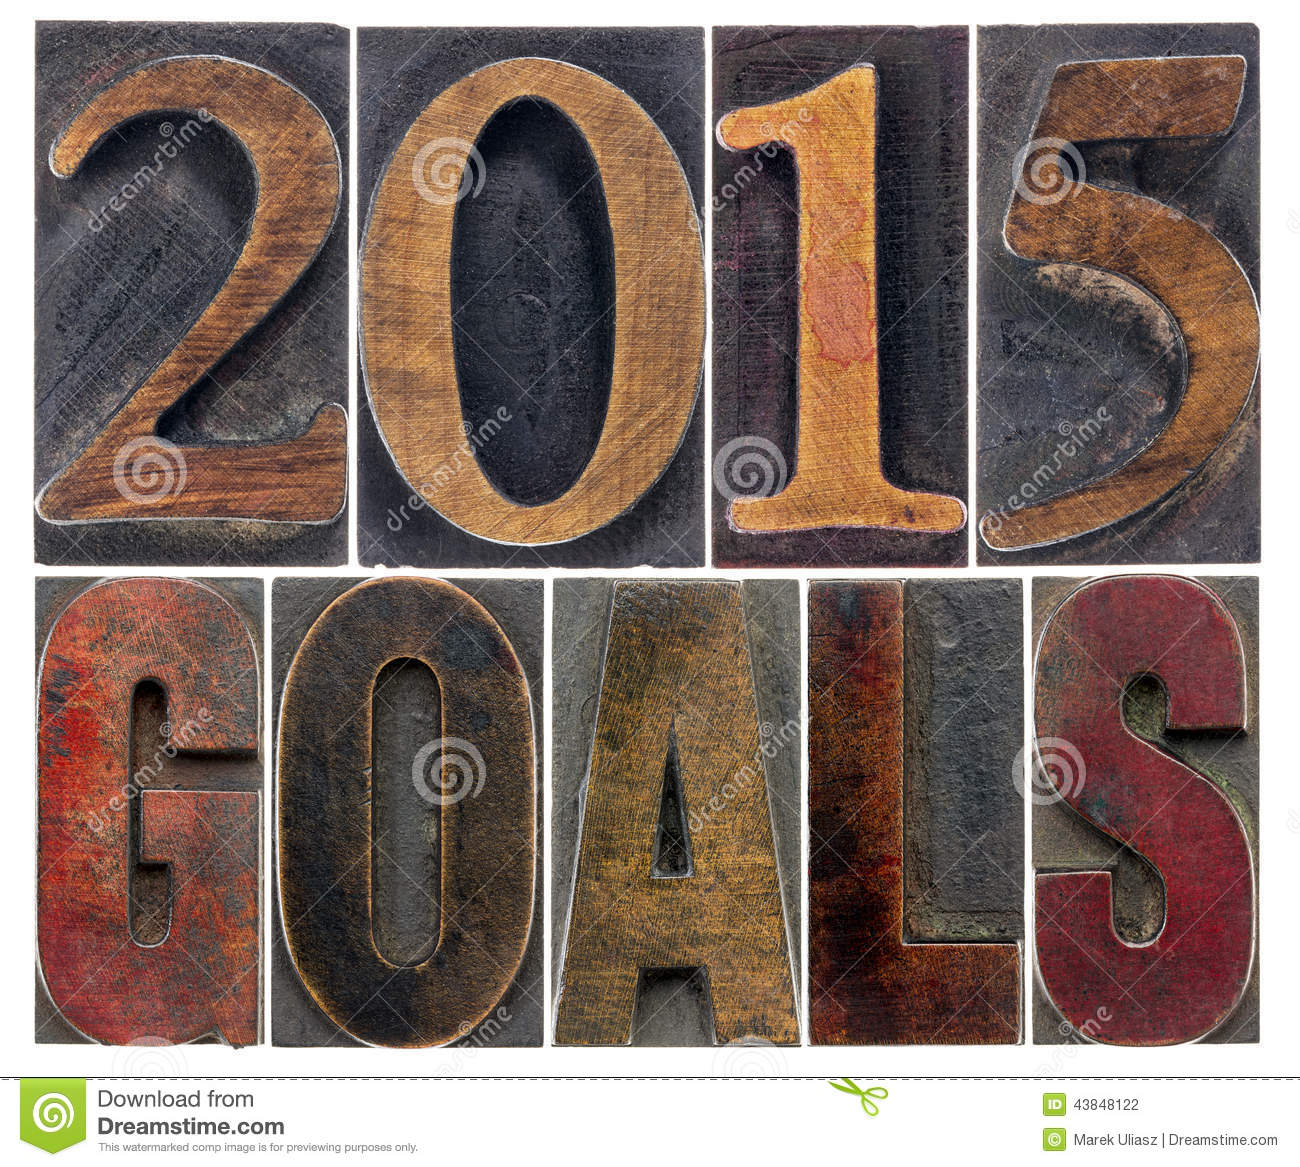 3 New Types of New Year's Resolutions